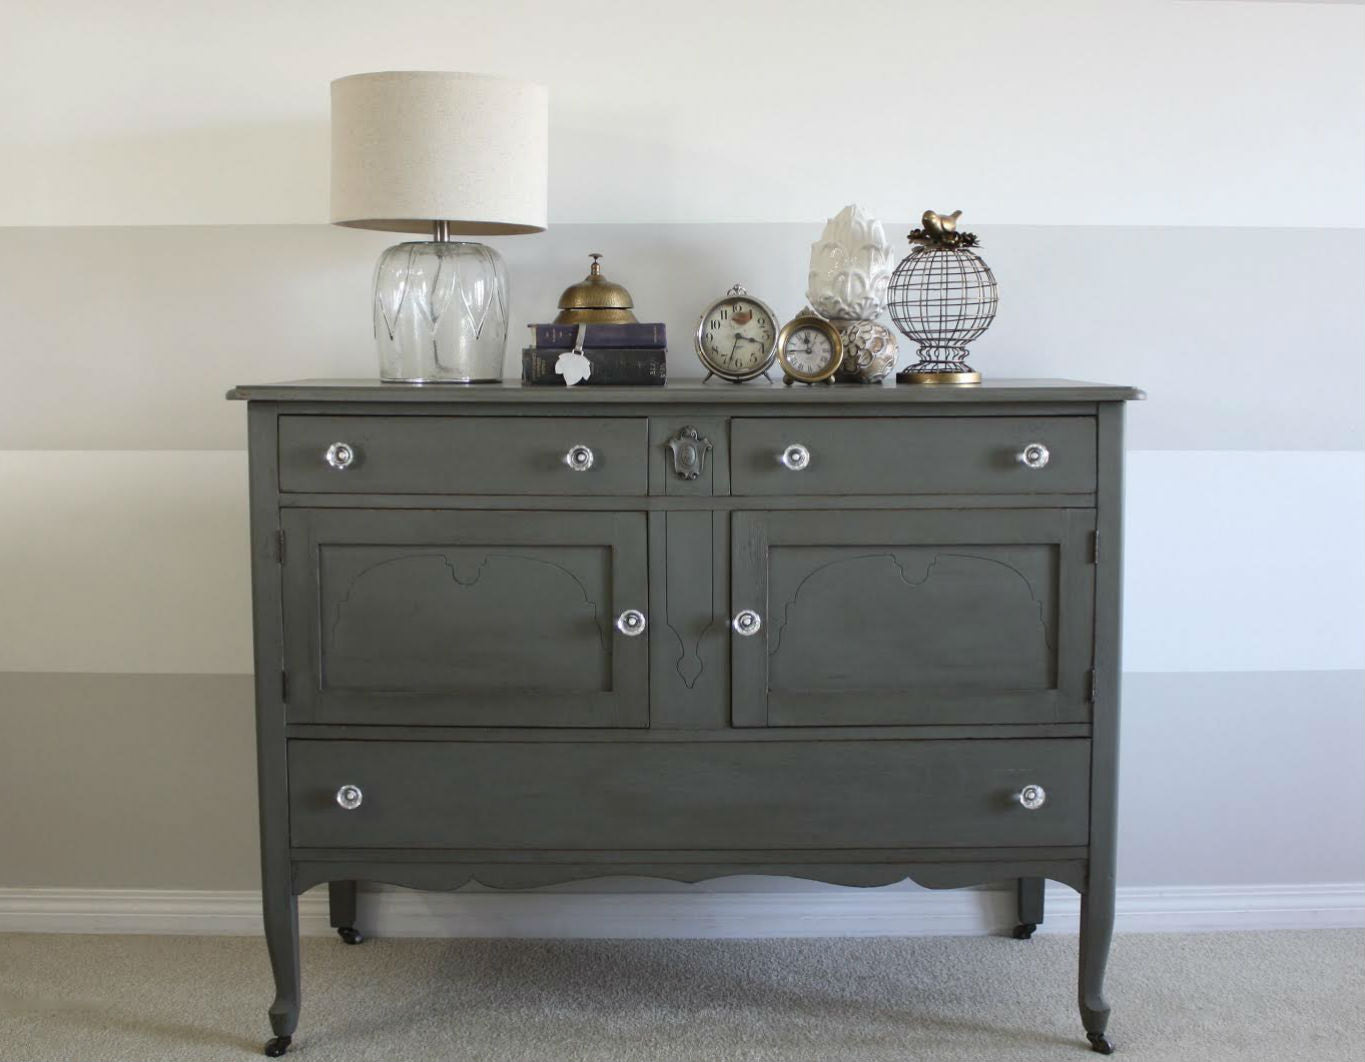 warm medium grey dresser painted with eco-friendly DIY furniture paint by Country Chic Paint